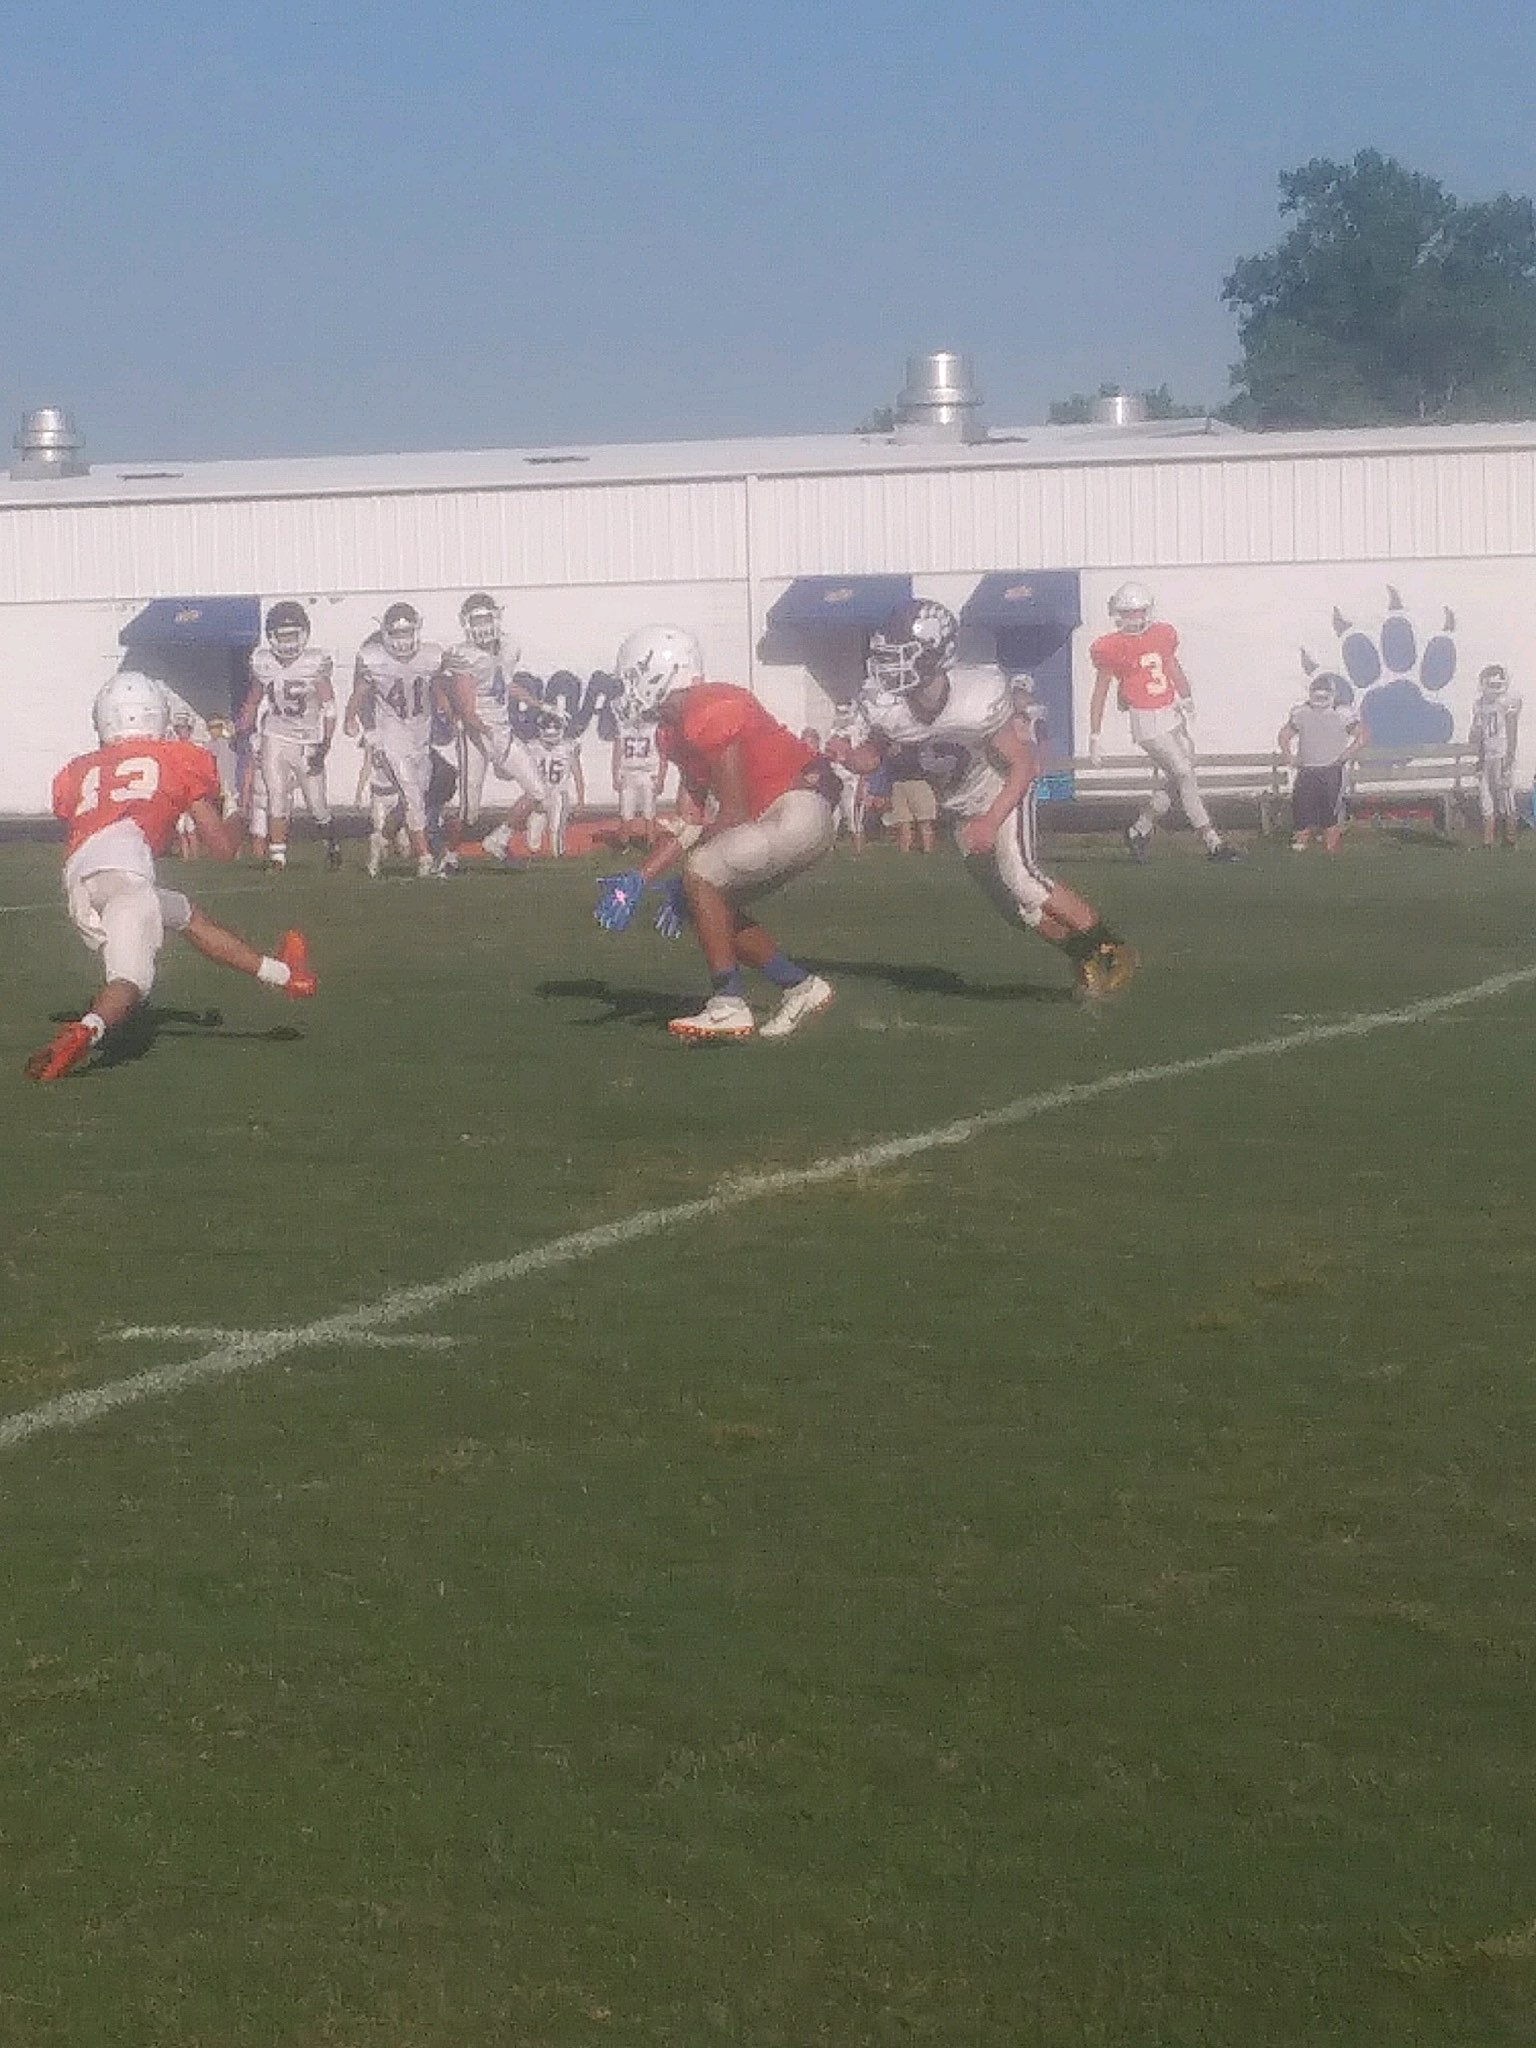 Many Cougars play in Sevier County scrimmage – WLAF